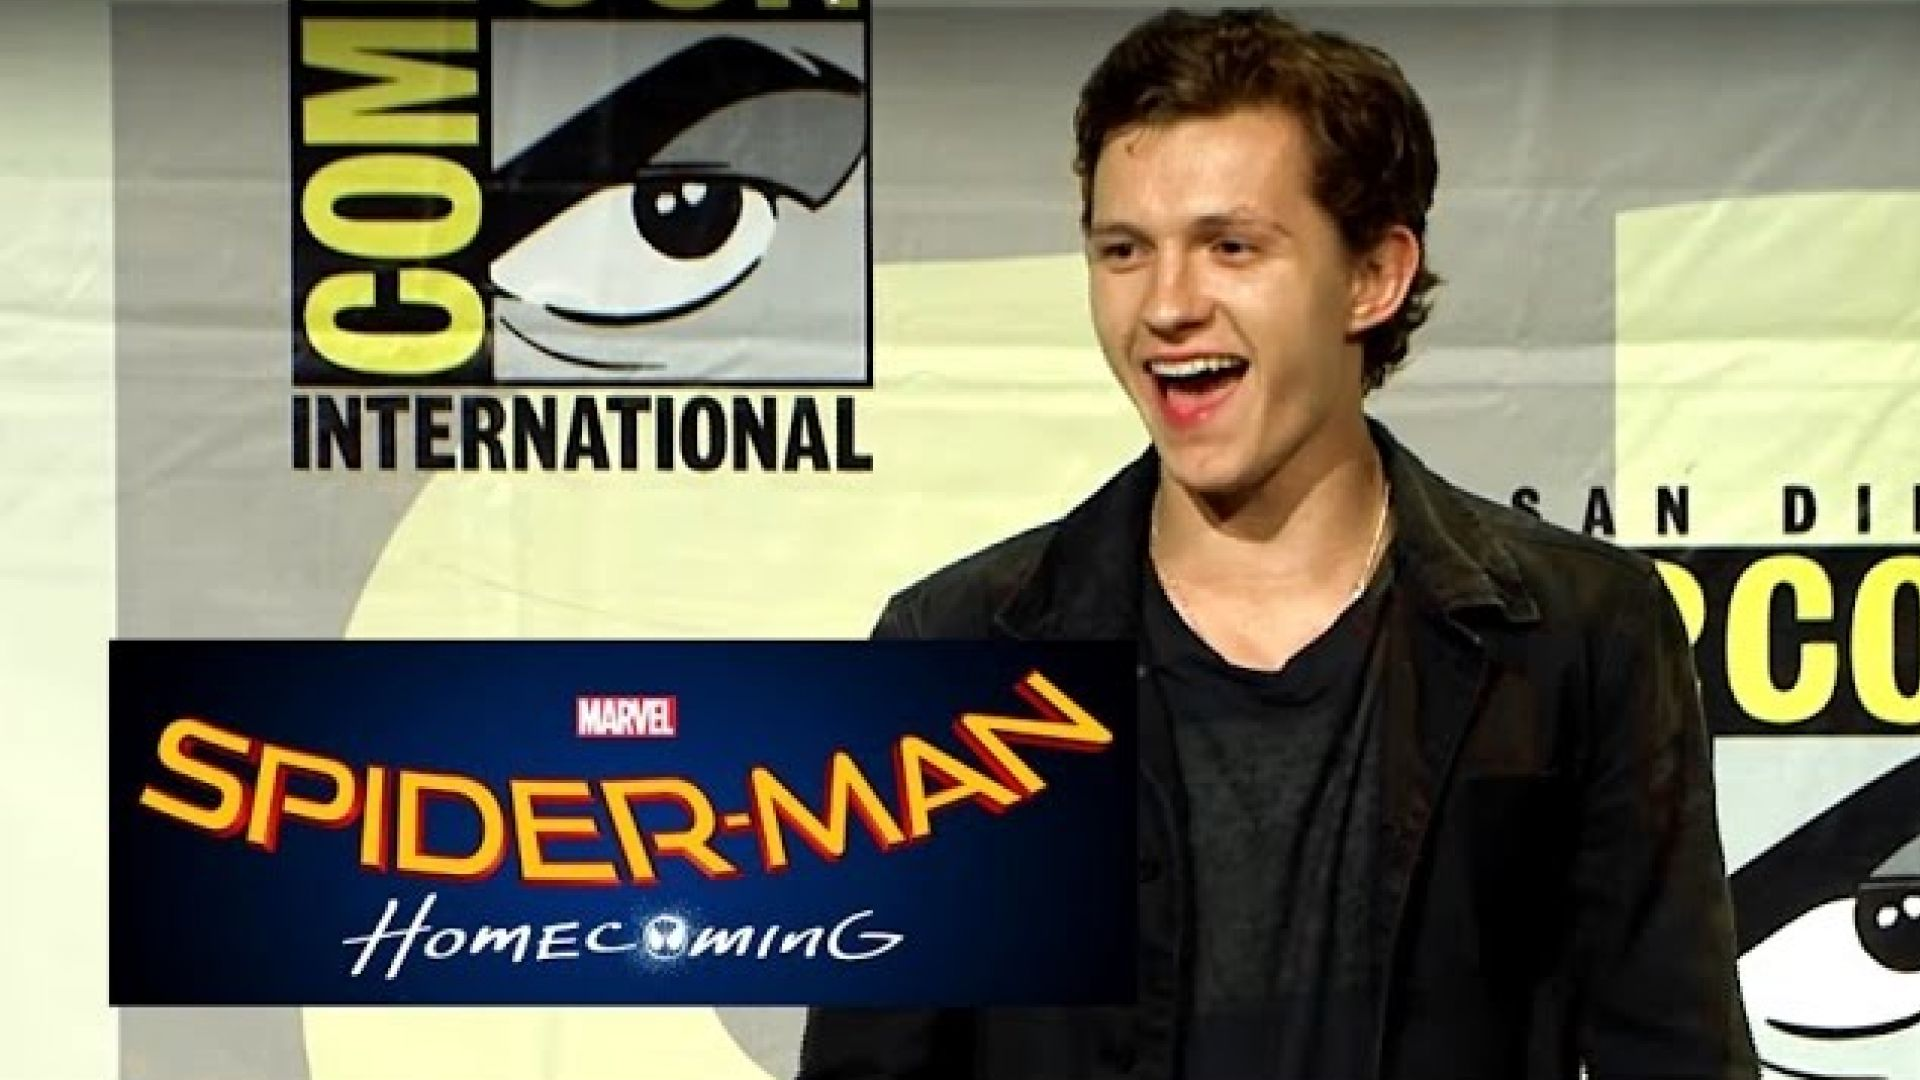 Check out the Spider-Man; Homecoming panel from Hall H at SD